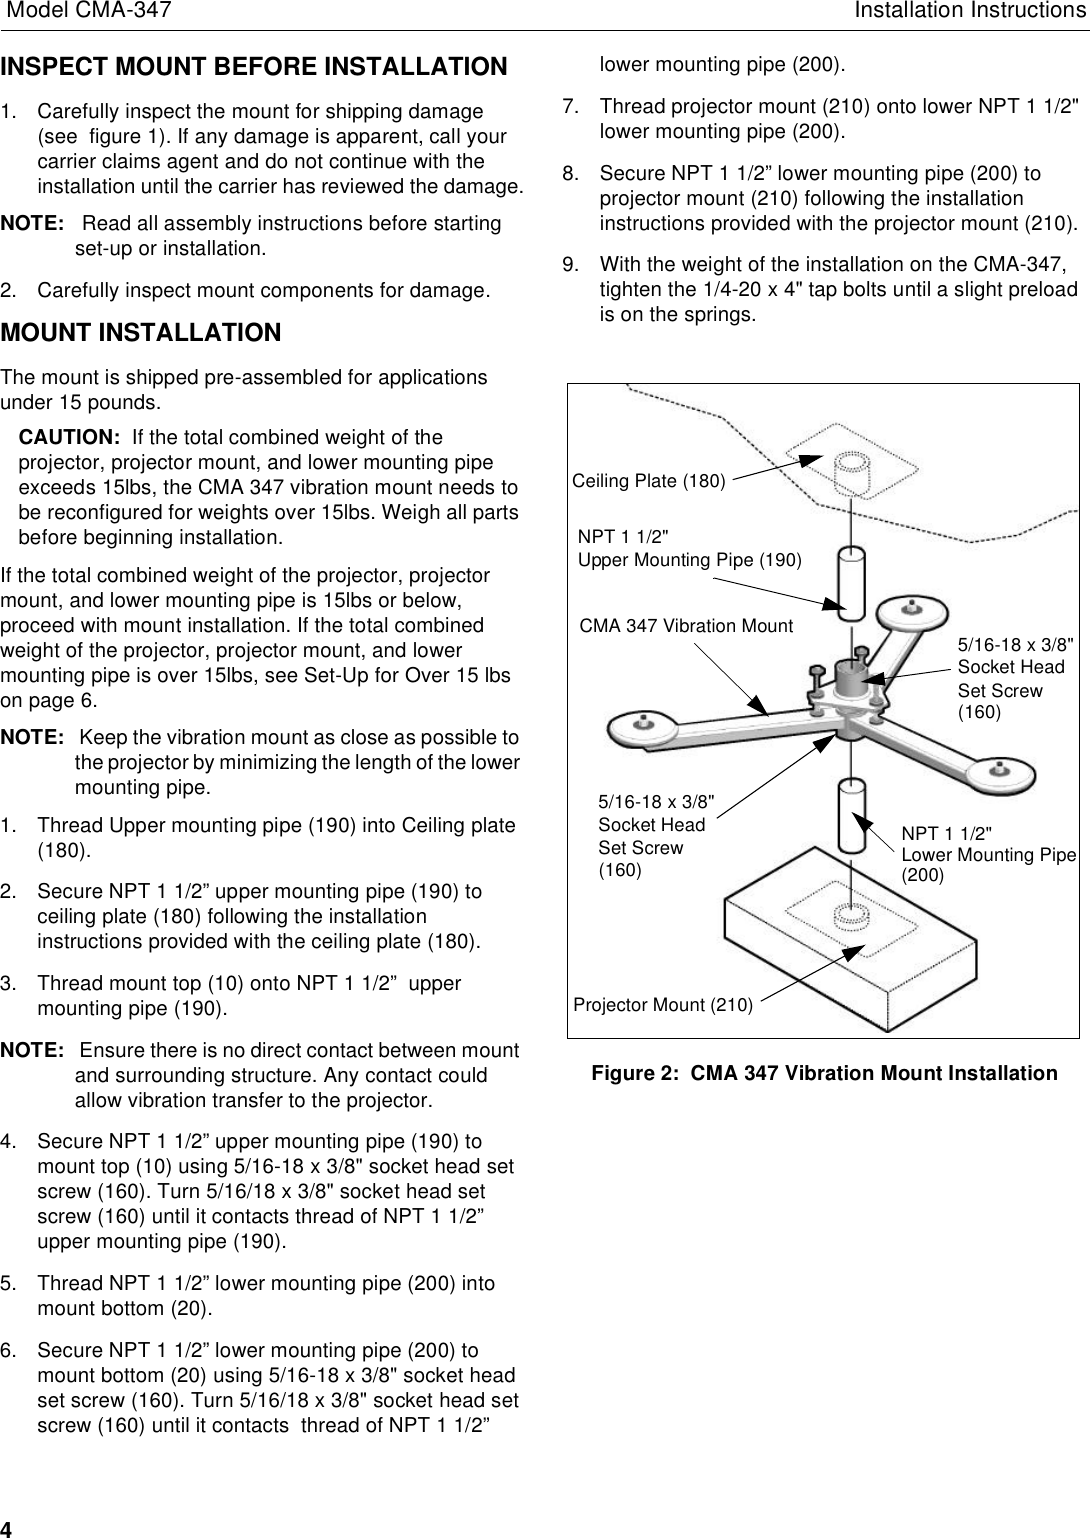 Chief Manufacturing Vibration Mount Cma 347 Users Manual